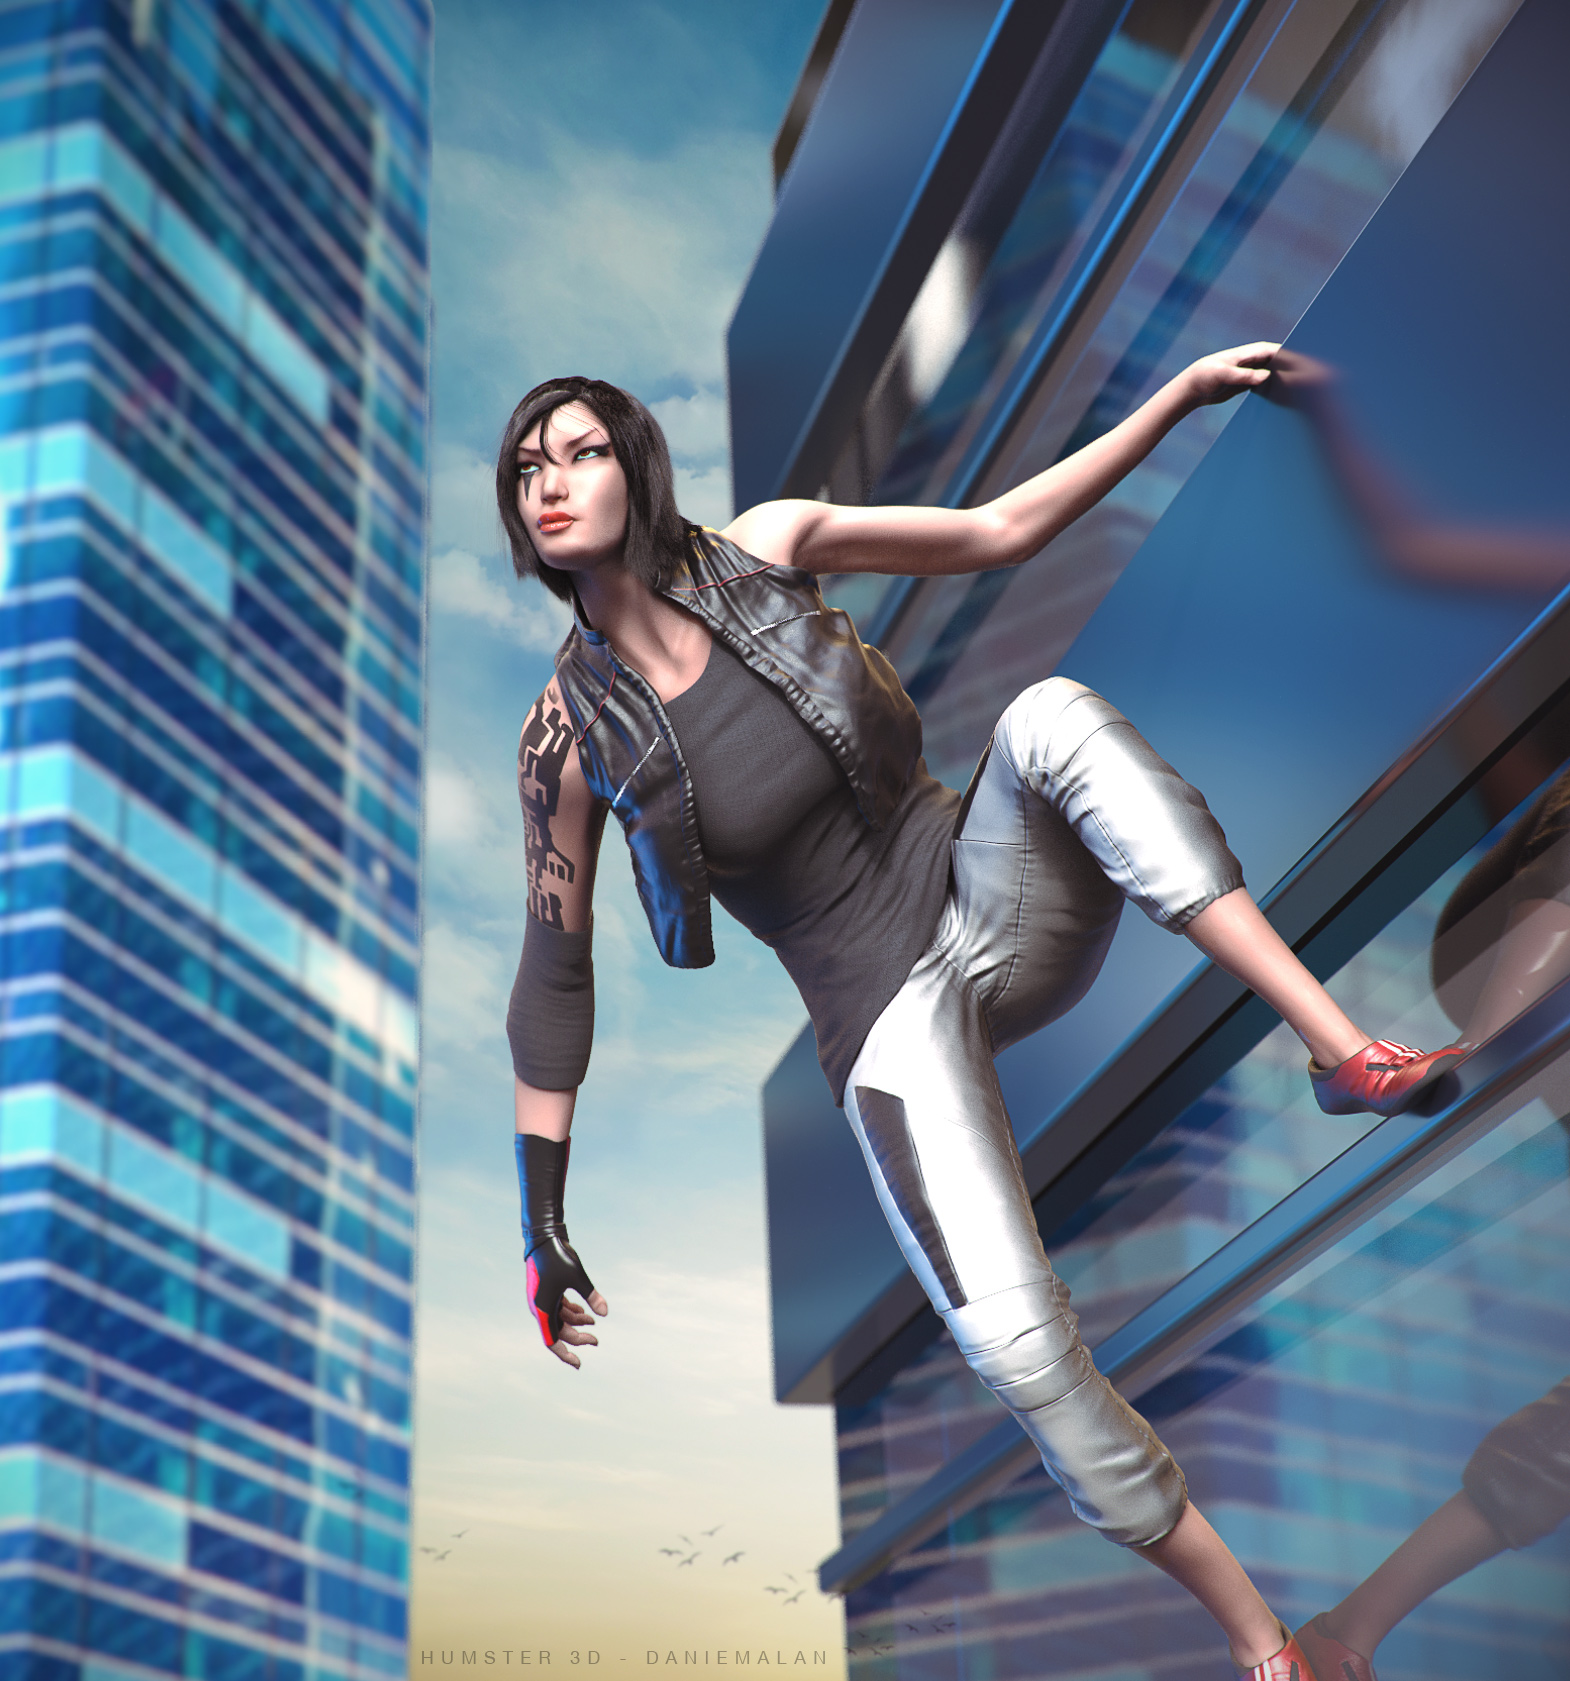 Faith - Mirror's Edge 3d art